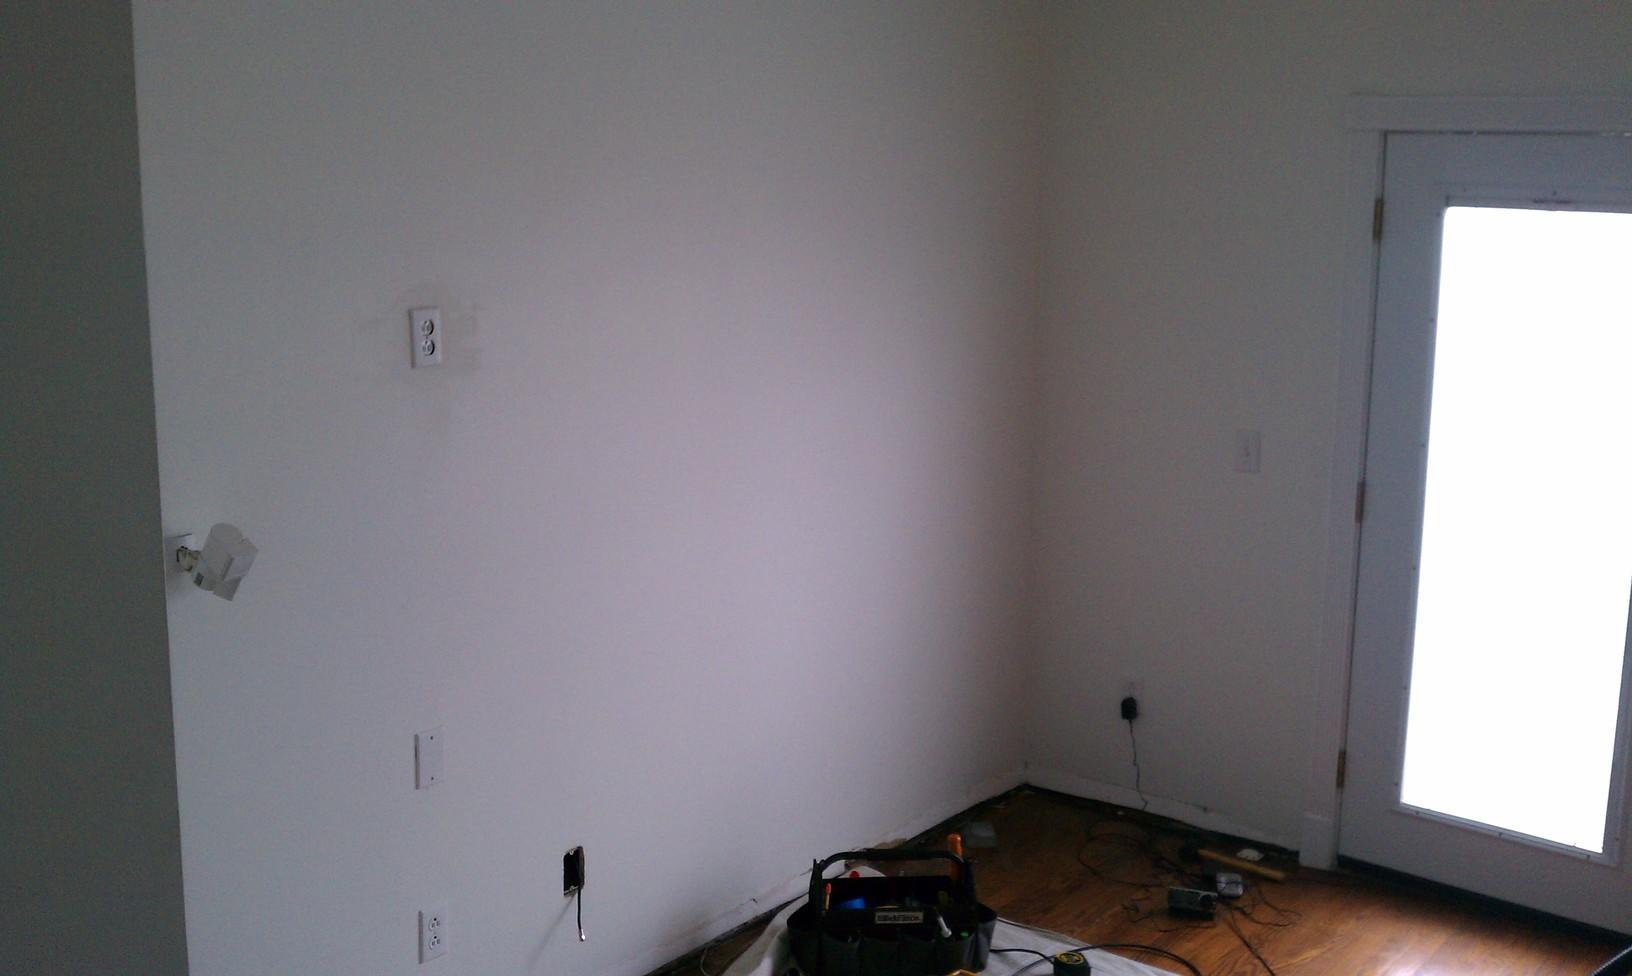 Just an empty wall getting prepped for new flatscreen